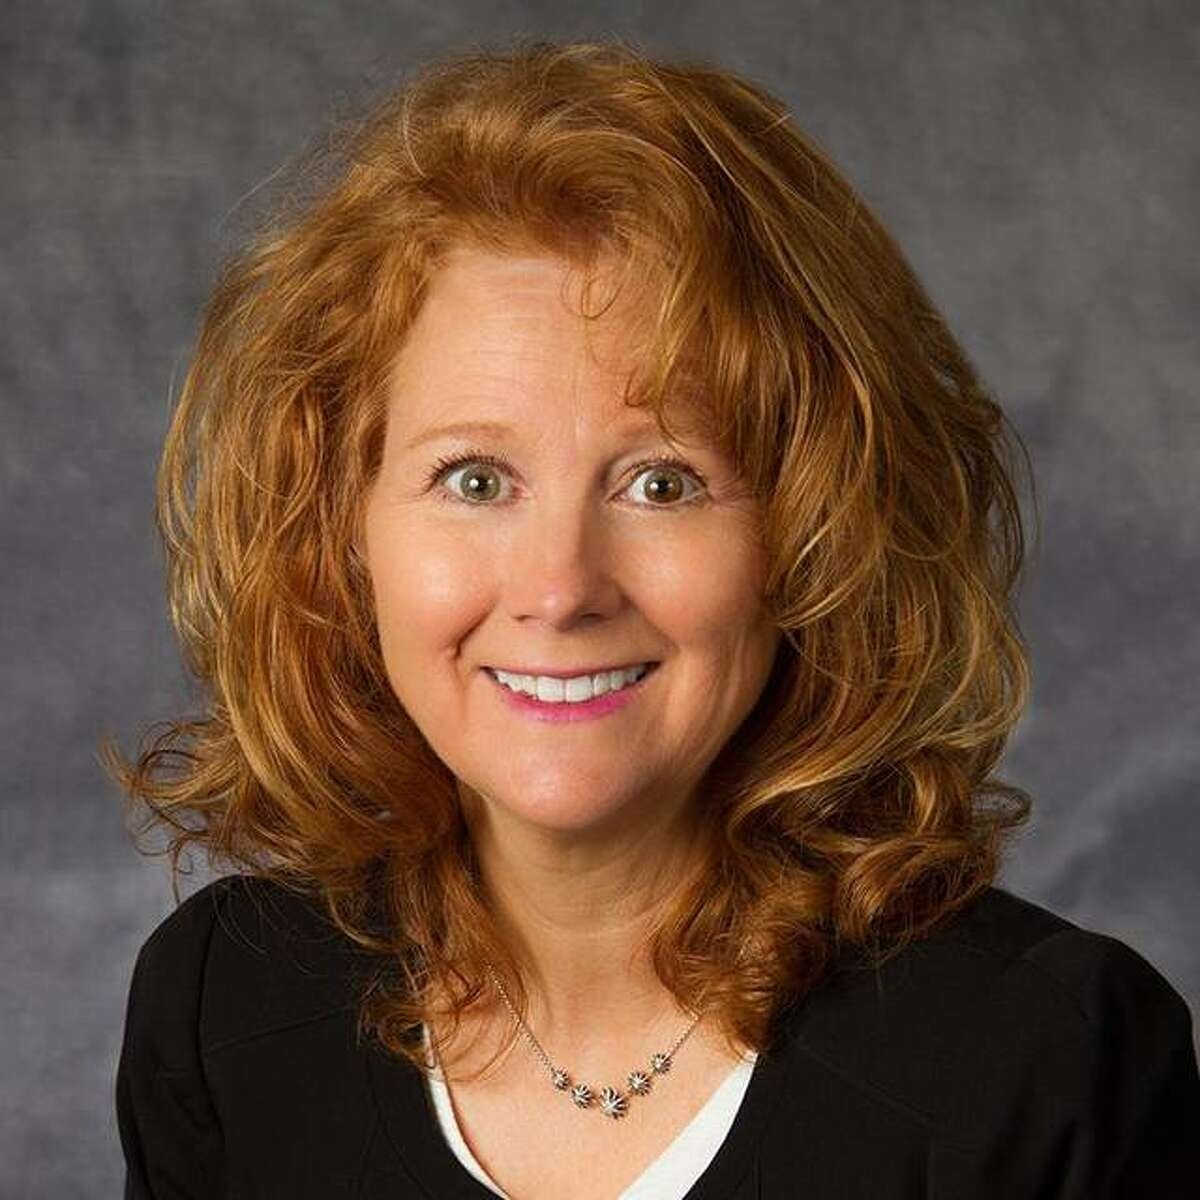 St. Louis Regional Freightway's Executive Director Mary Lamie